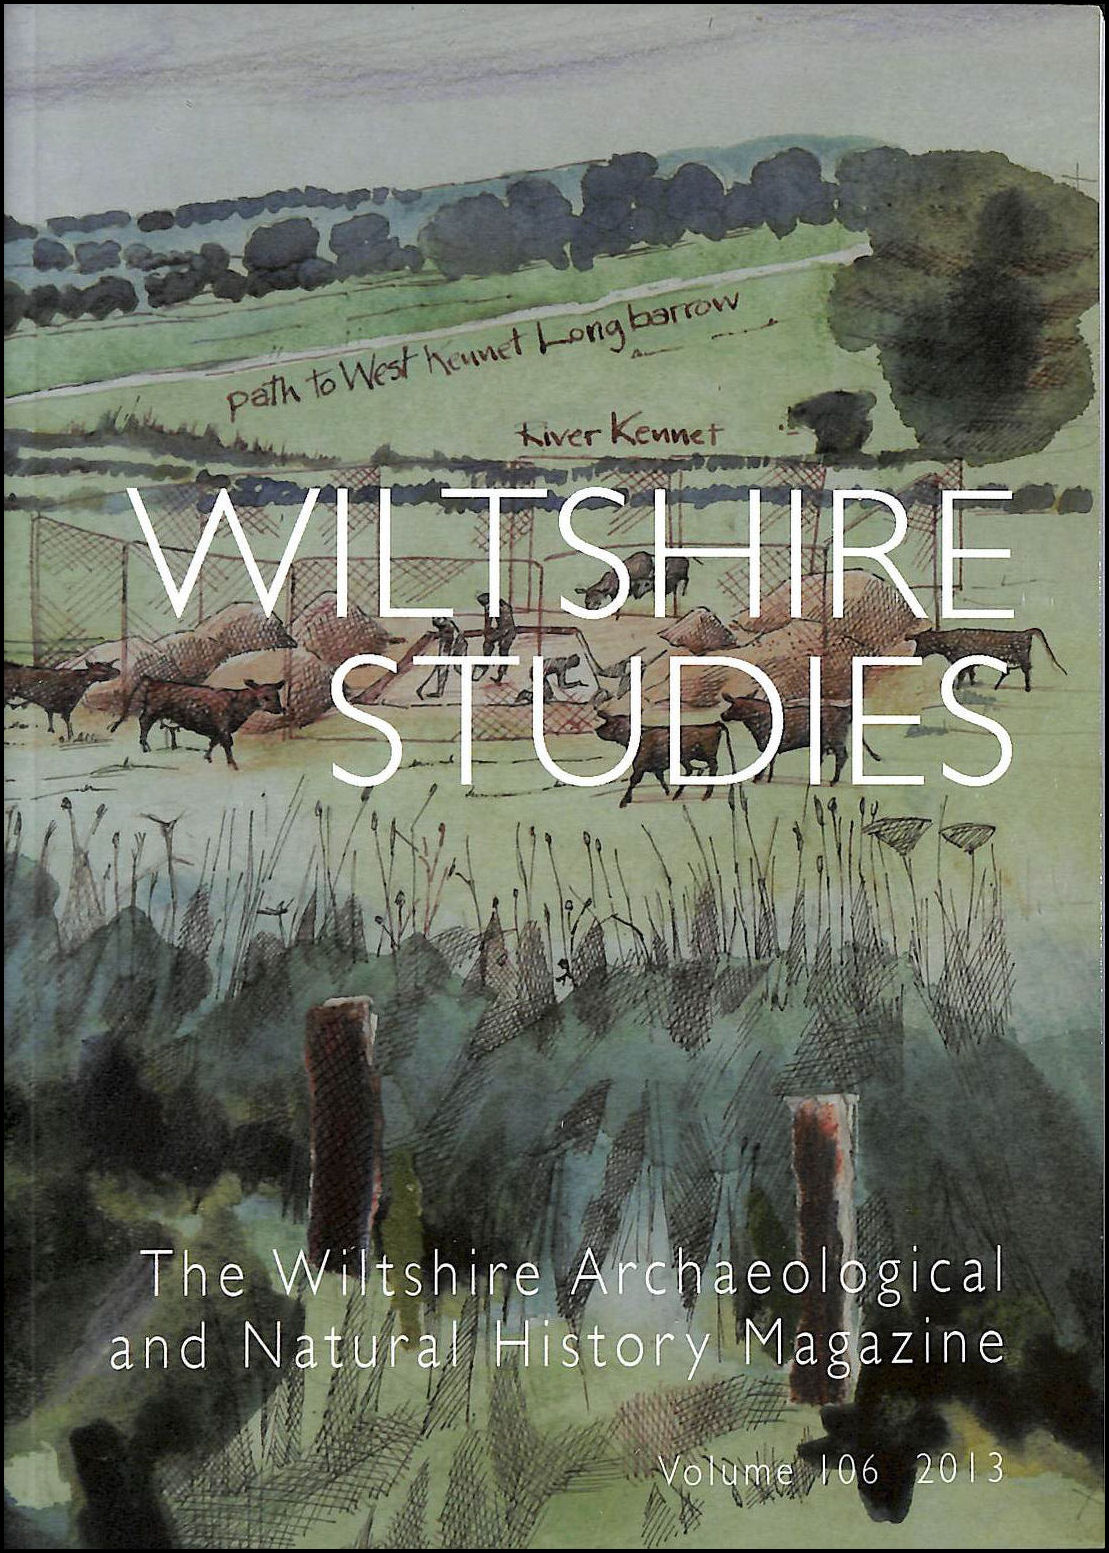 Wiltshire Studies: The Wiltshire Archaeological And Natural History Magazine Volume 106 2013, Robert Clarke [Editor]